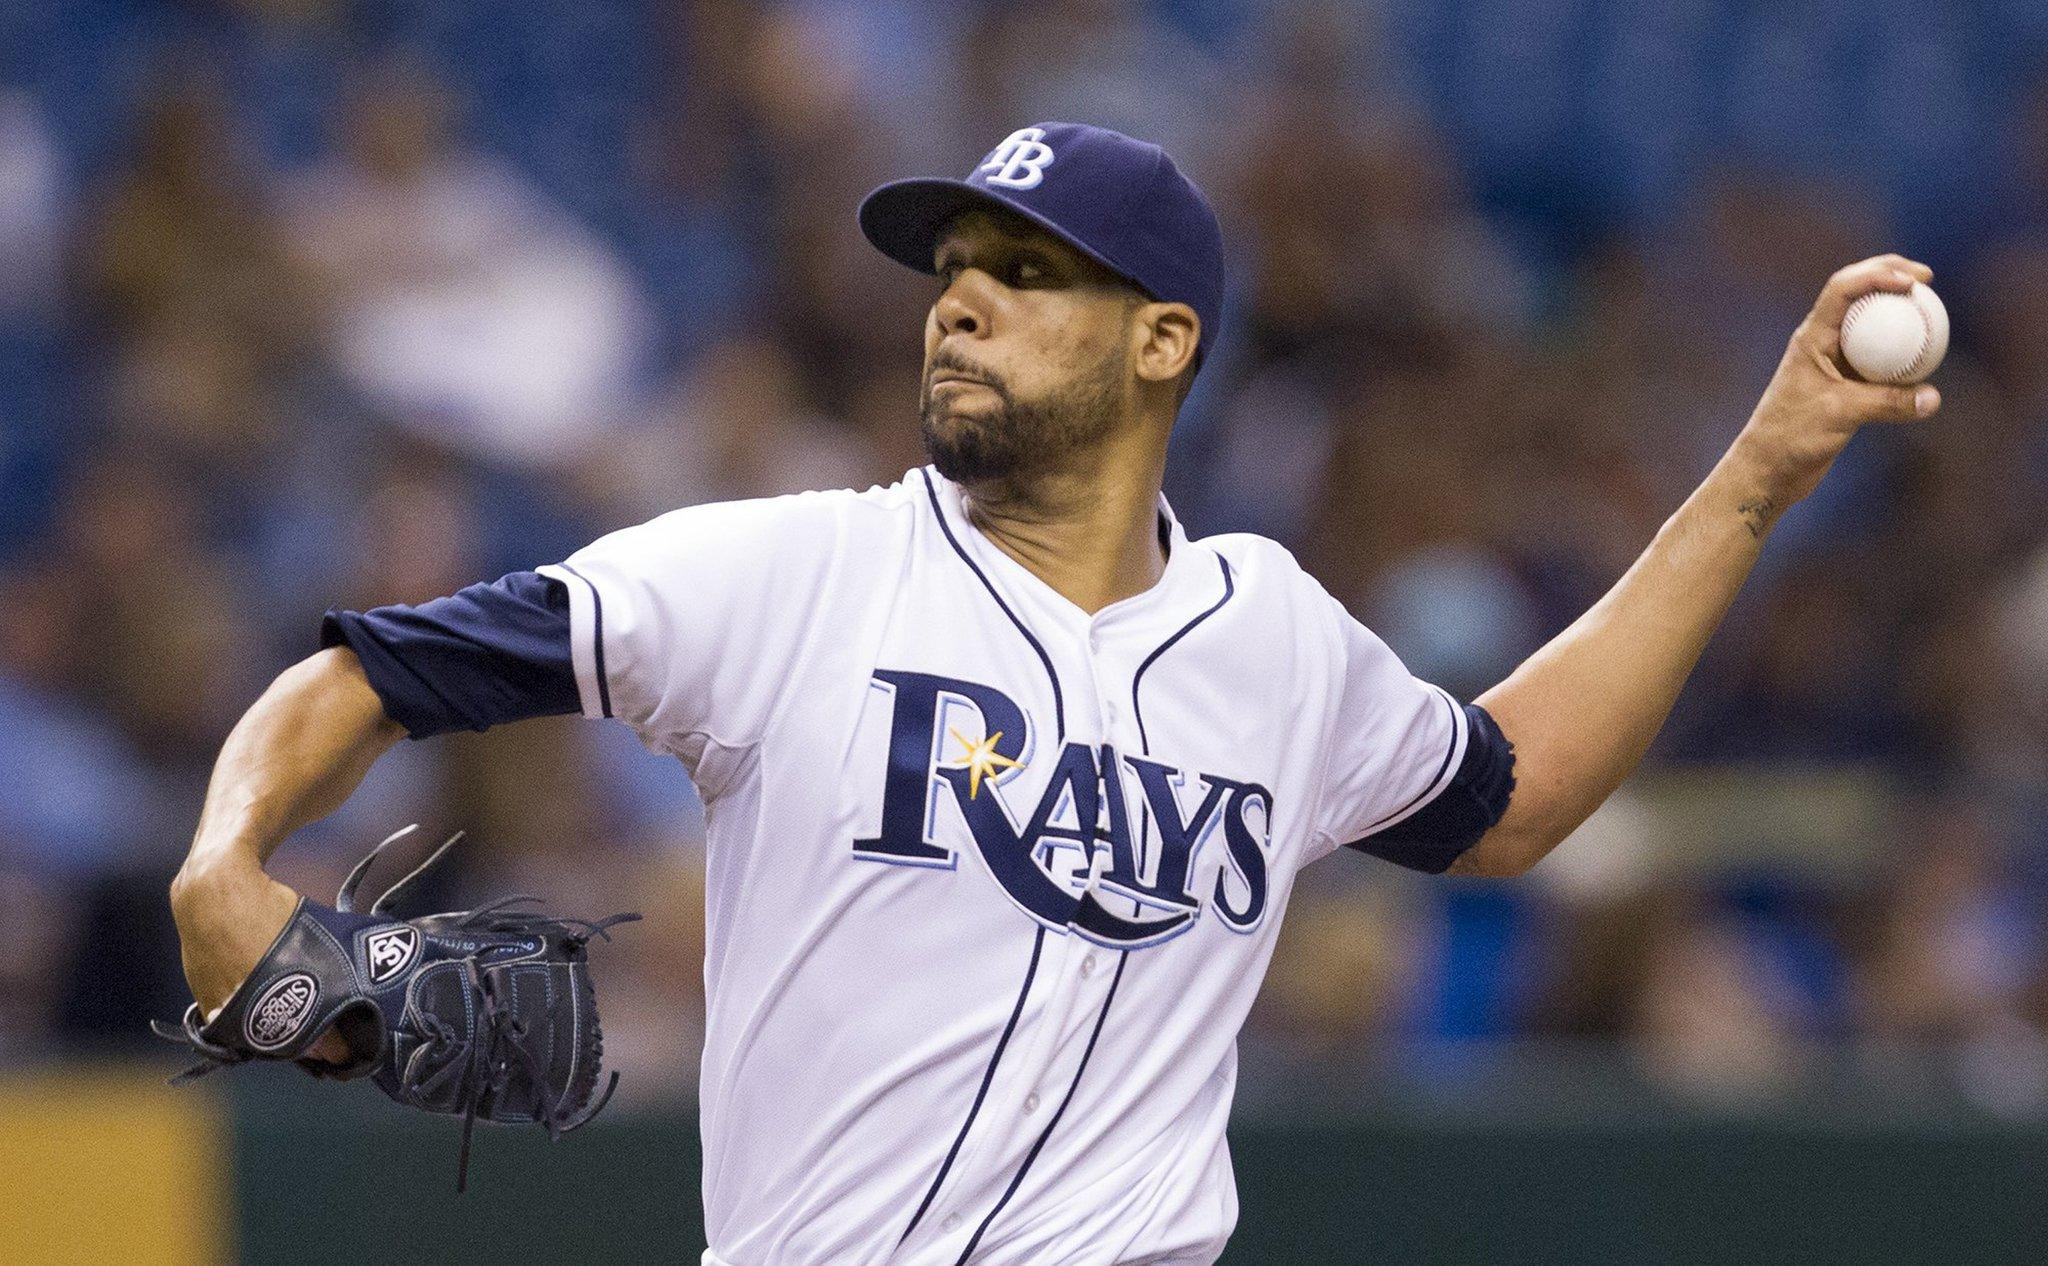 Tampa Bay Rays pitcher David Price throws in the first inning against the Seattle Mariners at Tropicana Field in St. Petersburg, Florida, on Wednesday, August 14, 2013.